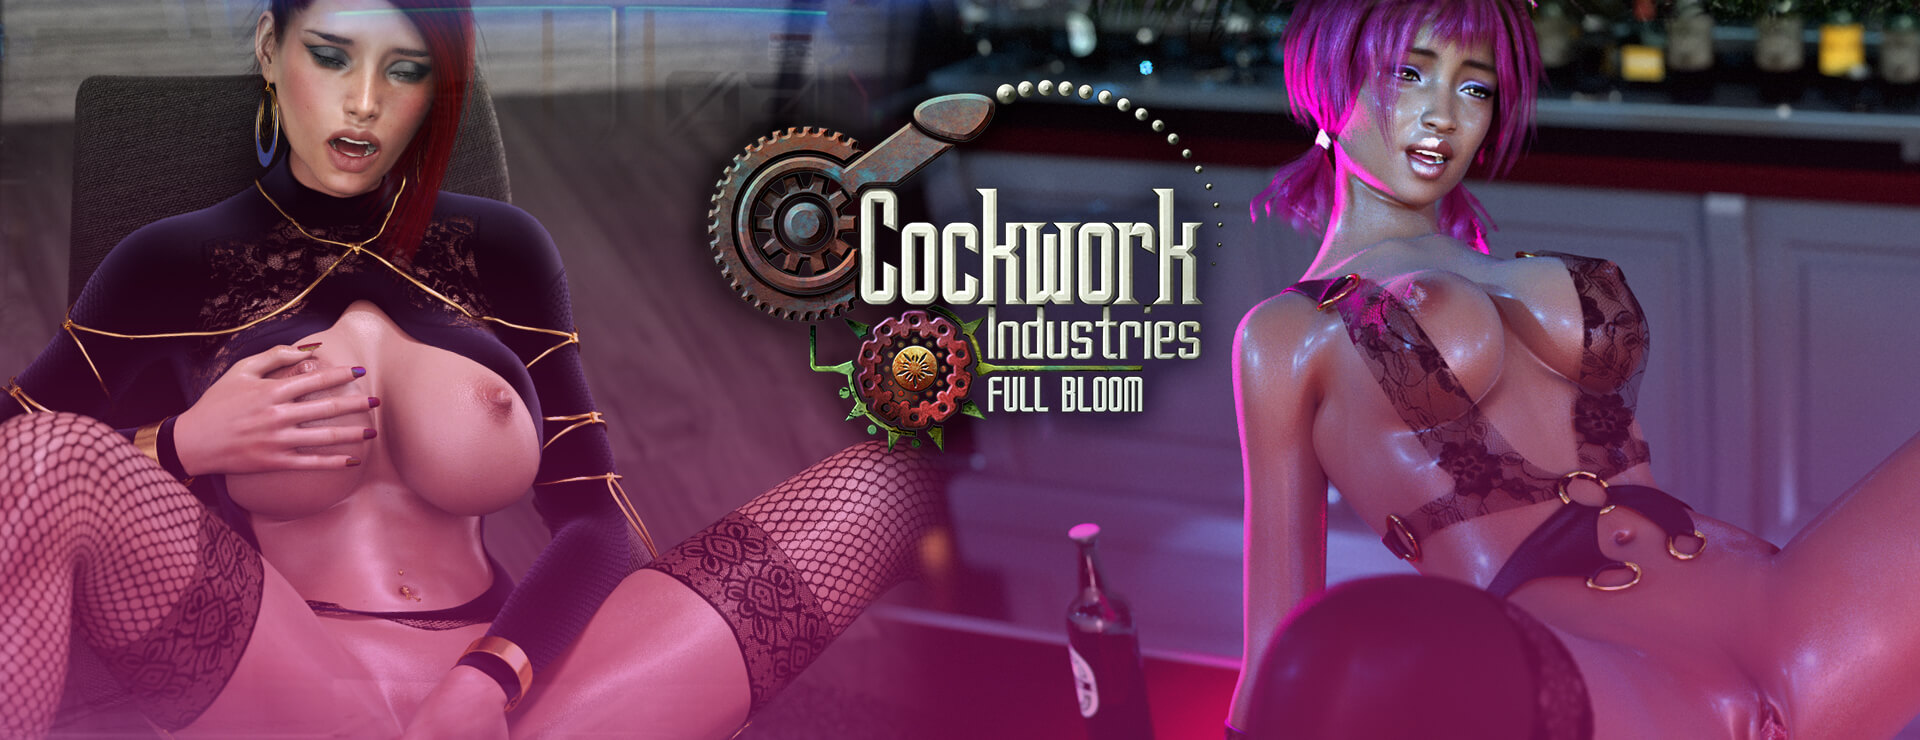 Cockwork Industries: DLC Pack - Action Adventure Game